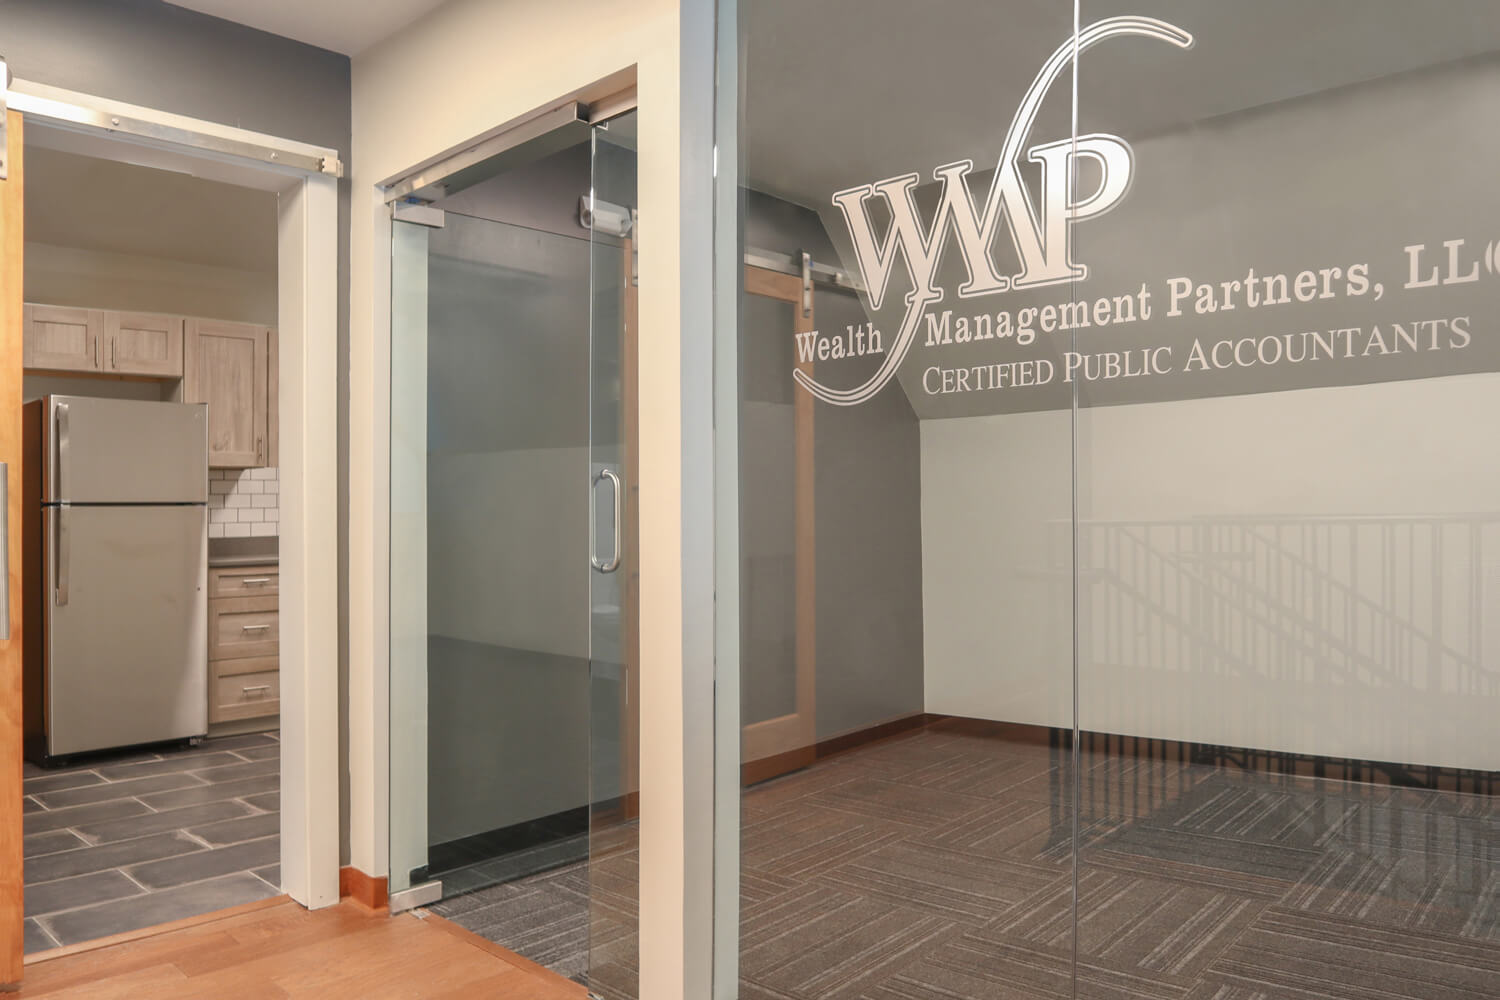 Wealth Management Partners - Logo and Branding - Designed by Foshee Architecture